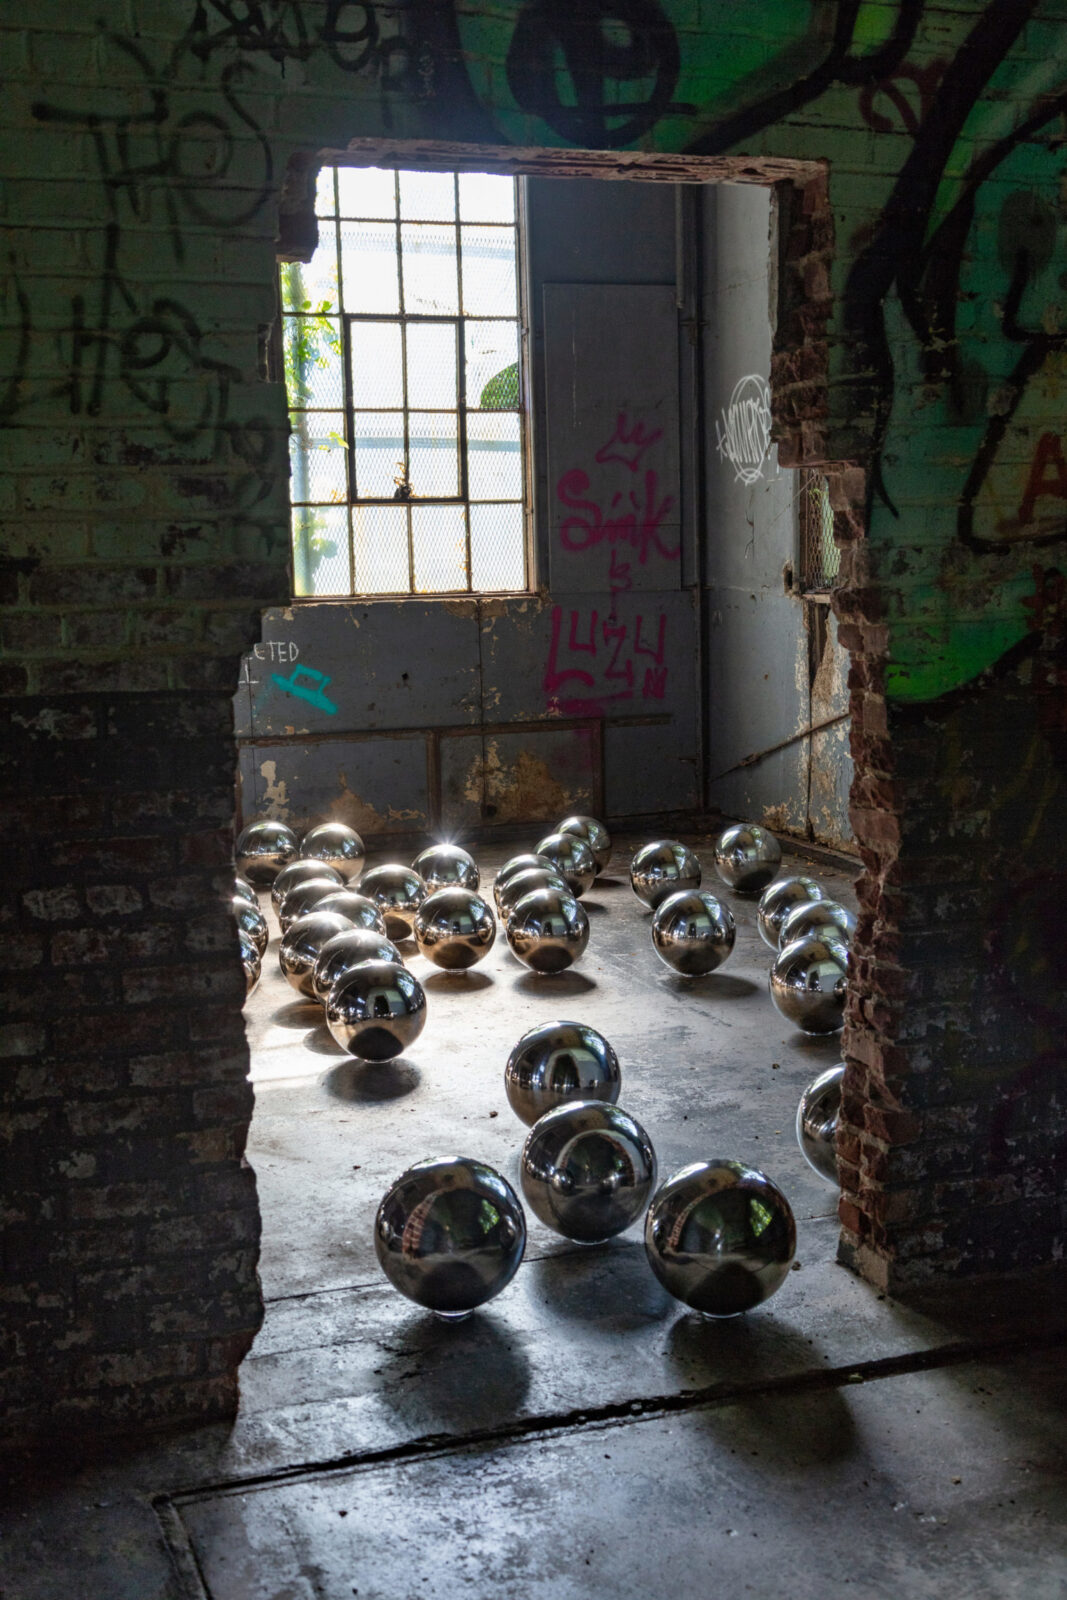 Take a Walk Through Yayoi Kusama's 'Narcissus Garden' Inside an Abandoned Factory in the Rockaways